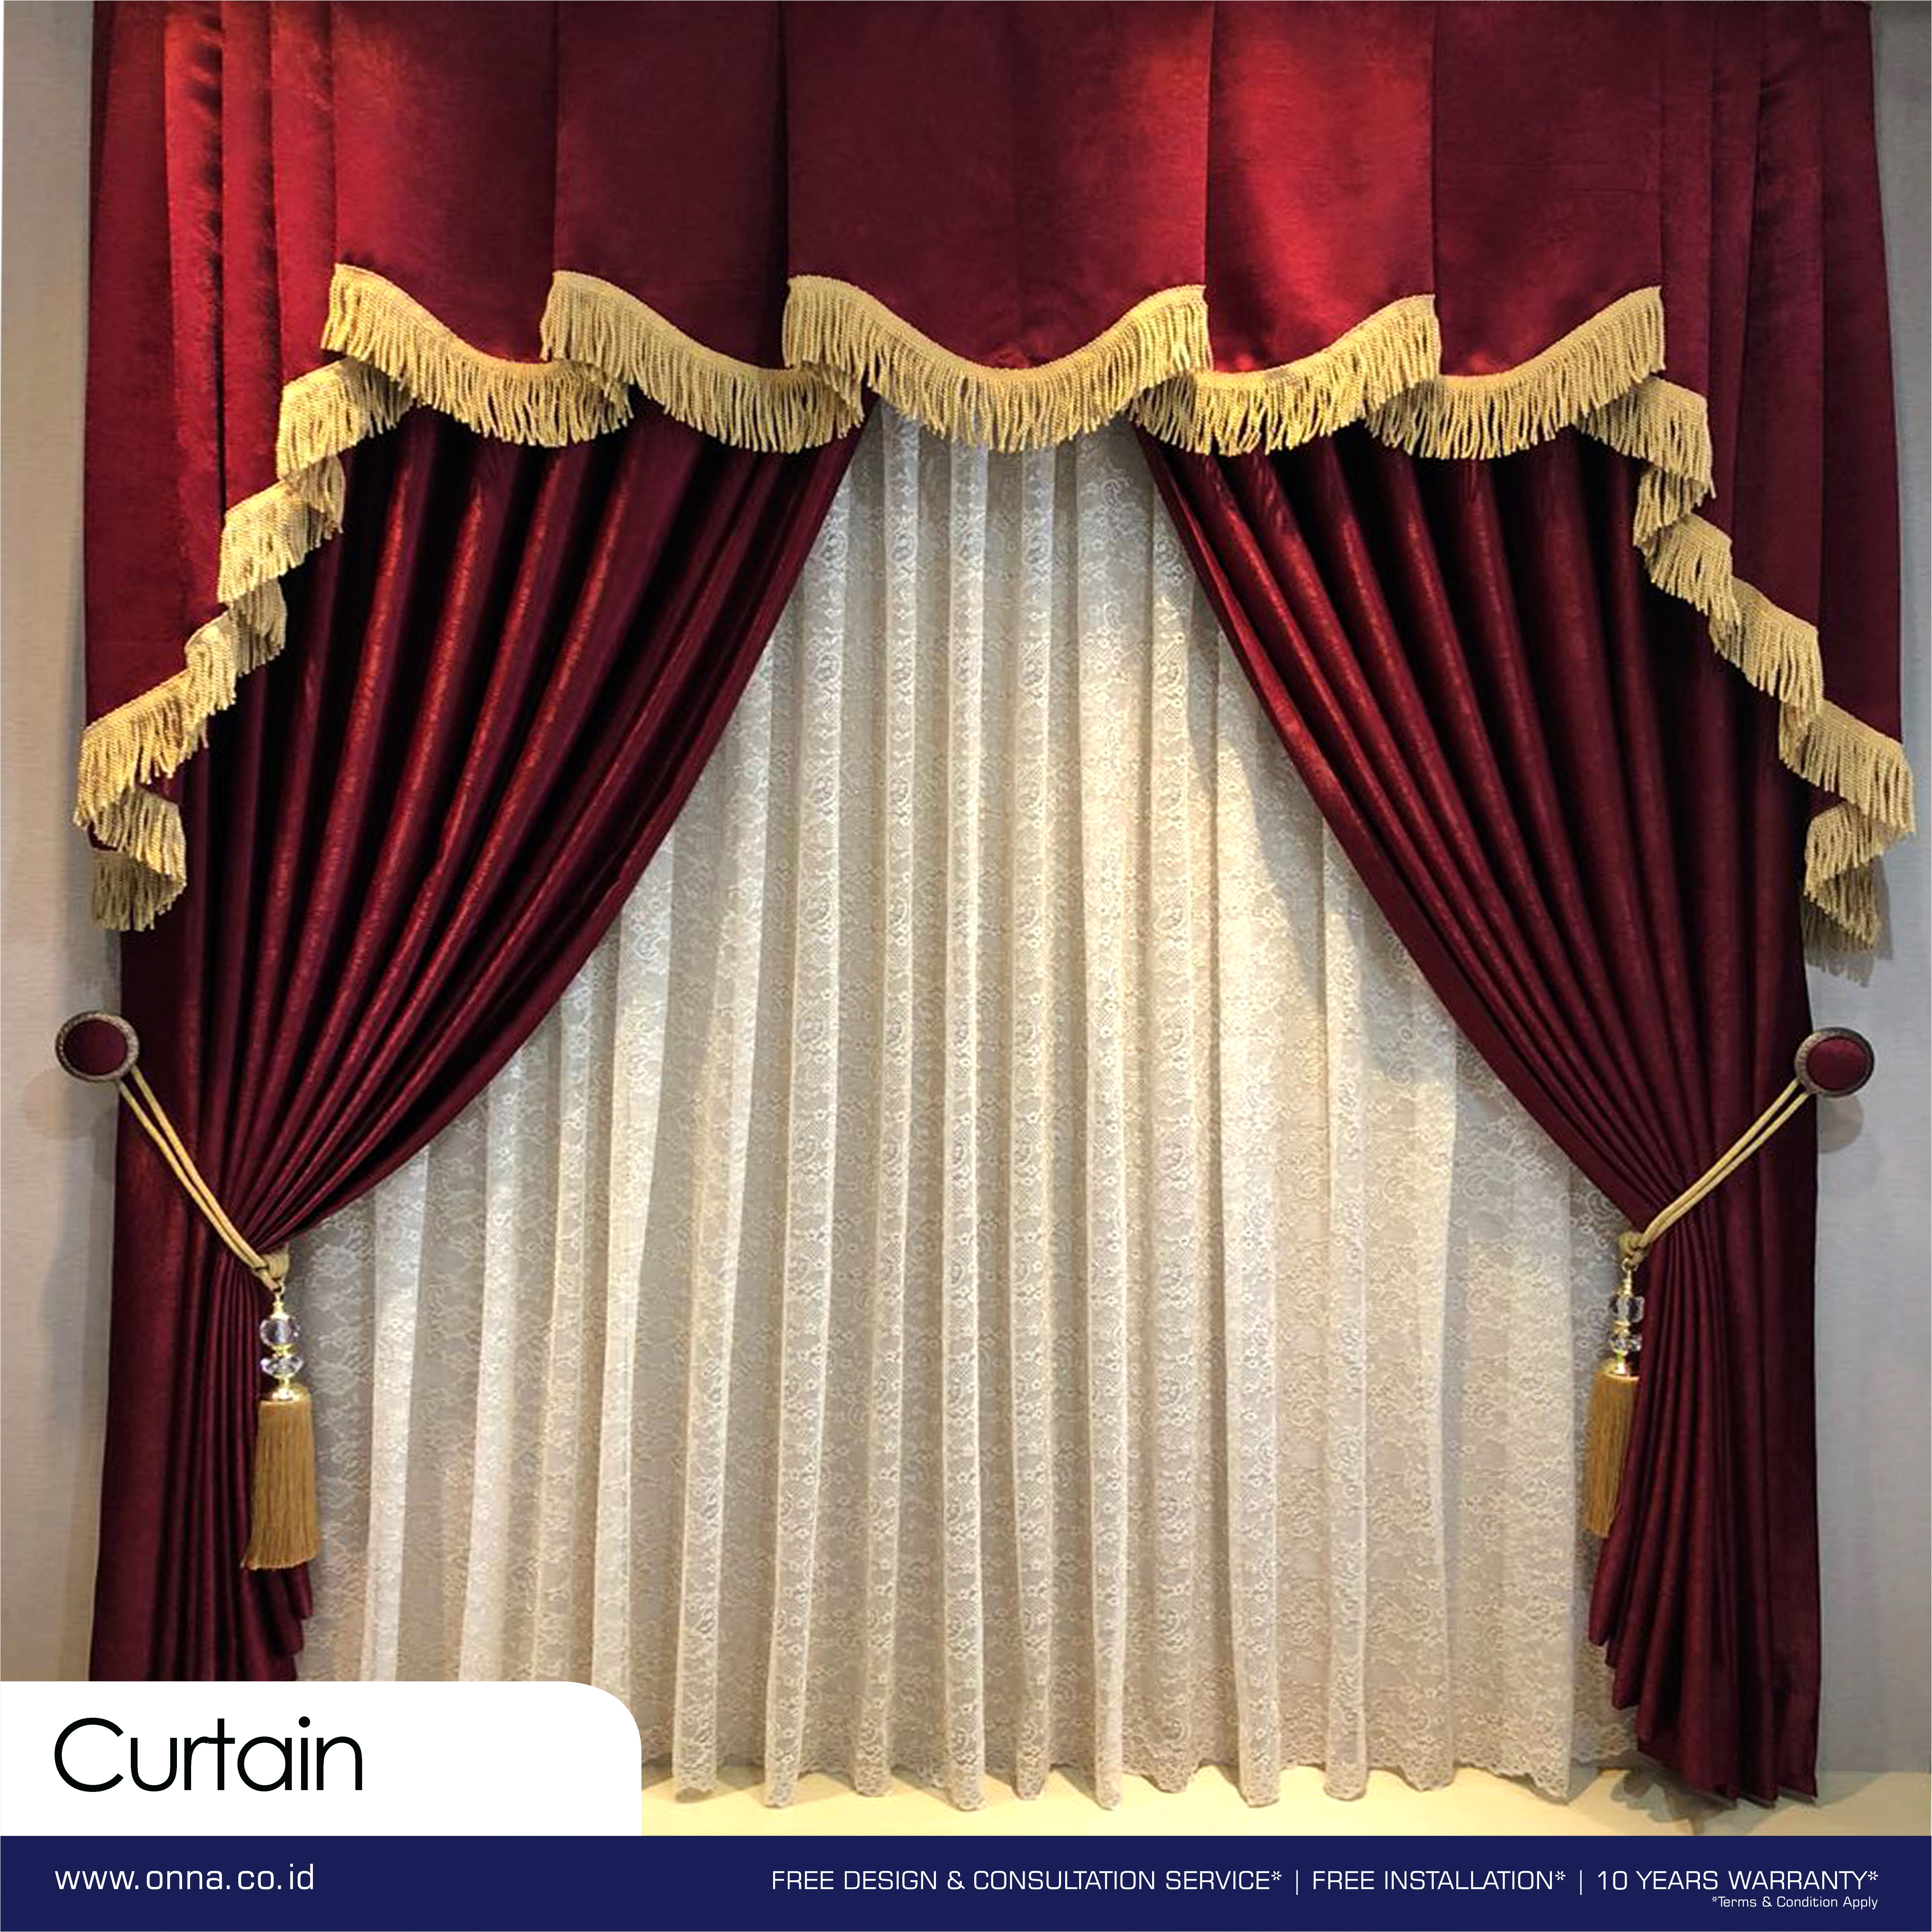 A Custom Made Curtain In Deep Red For Those Wanting To Make A